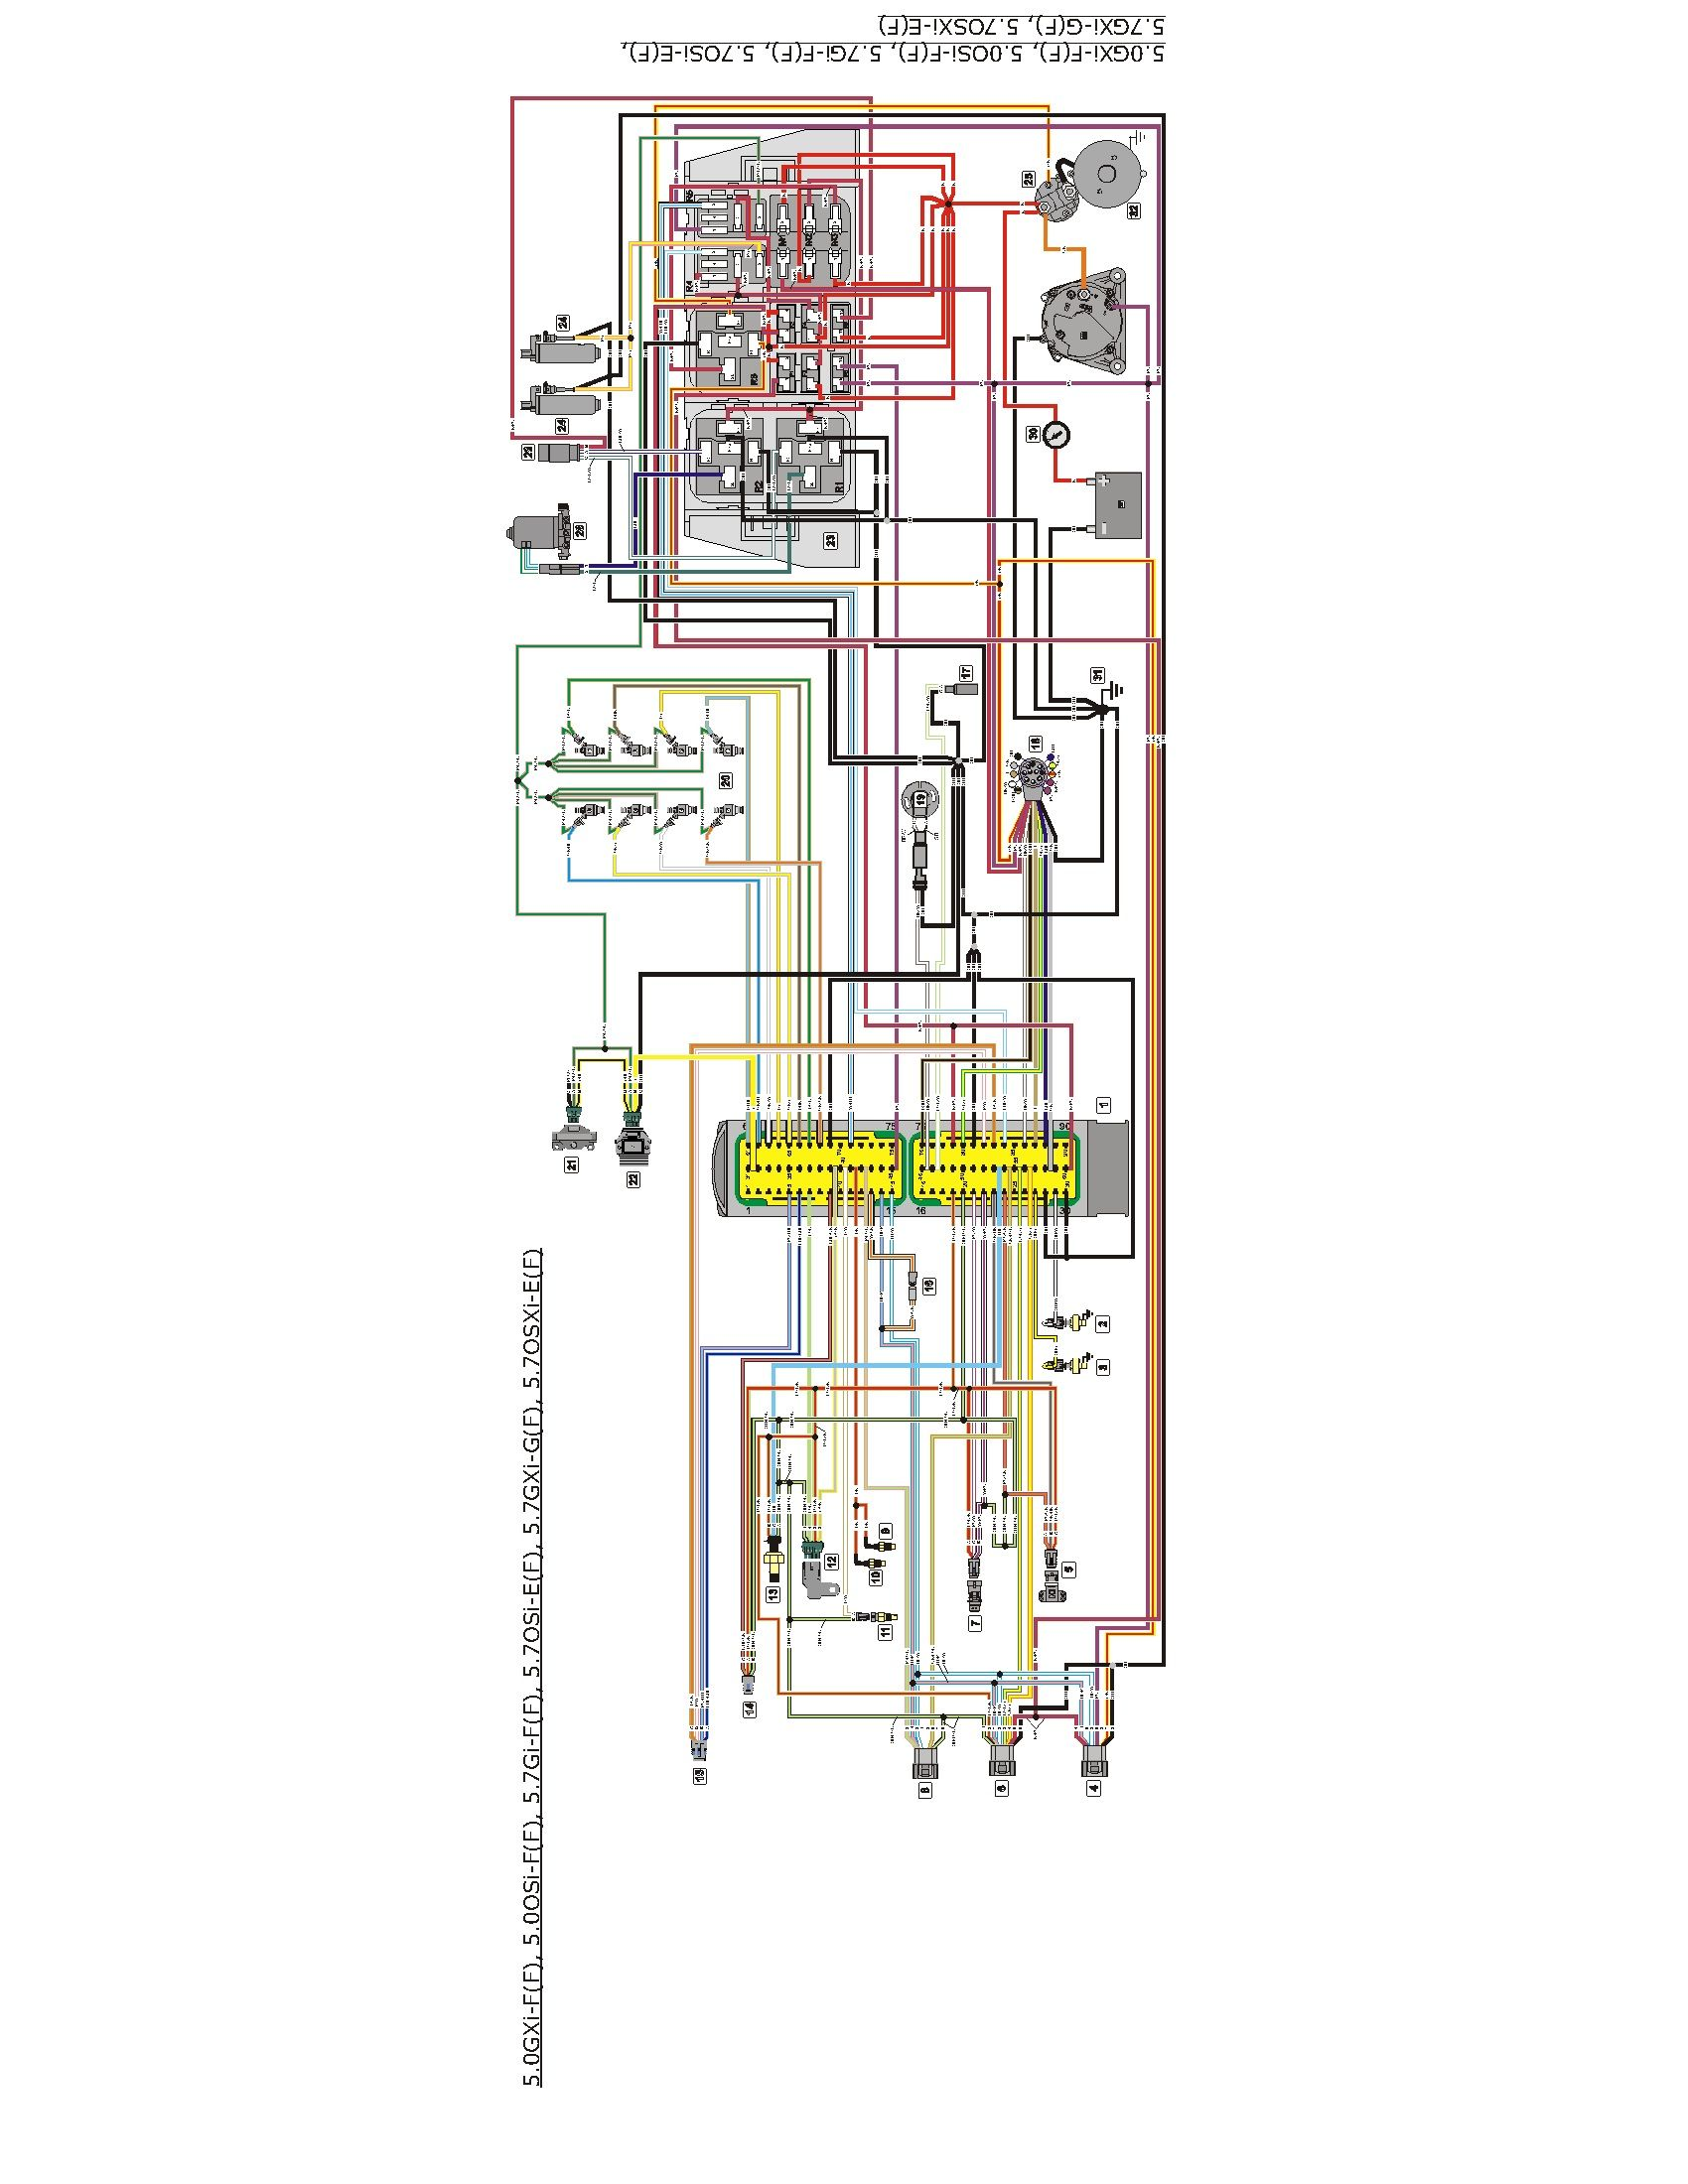 Volvo 740 Headlight Wiring Engine Diagram Reinvent Your Penta 5 7 Boat Pinterest Rh Com D12 S40